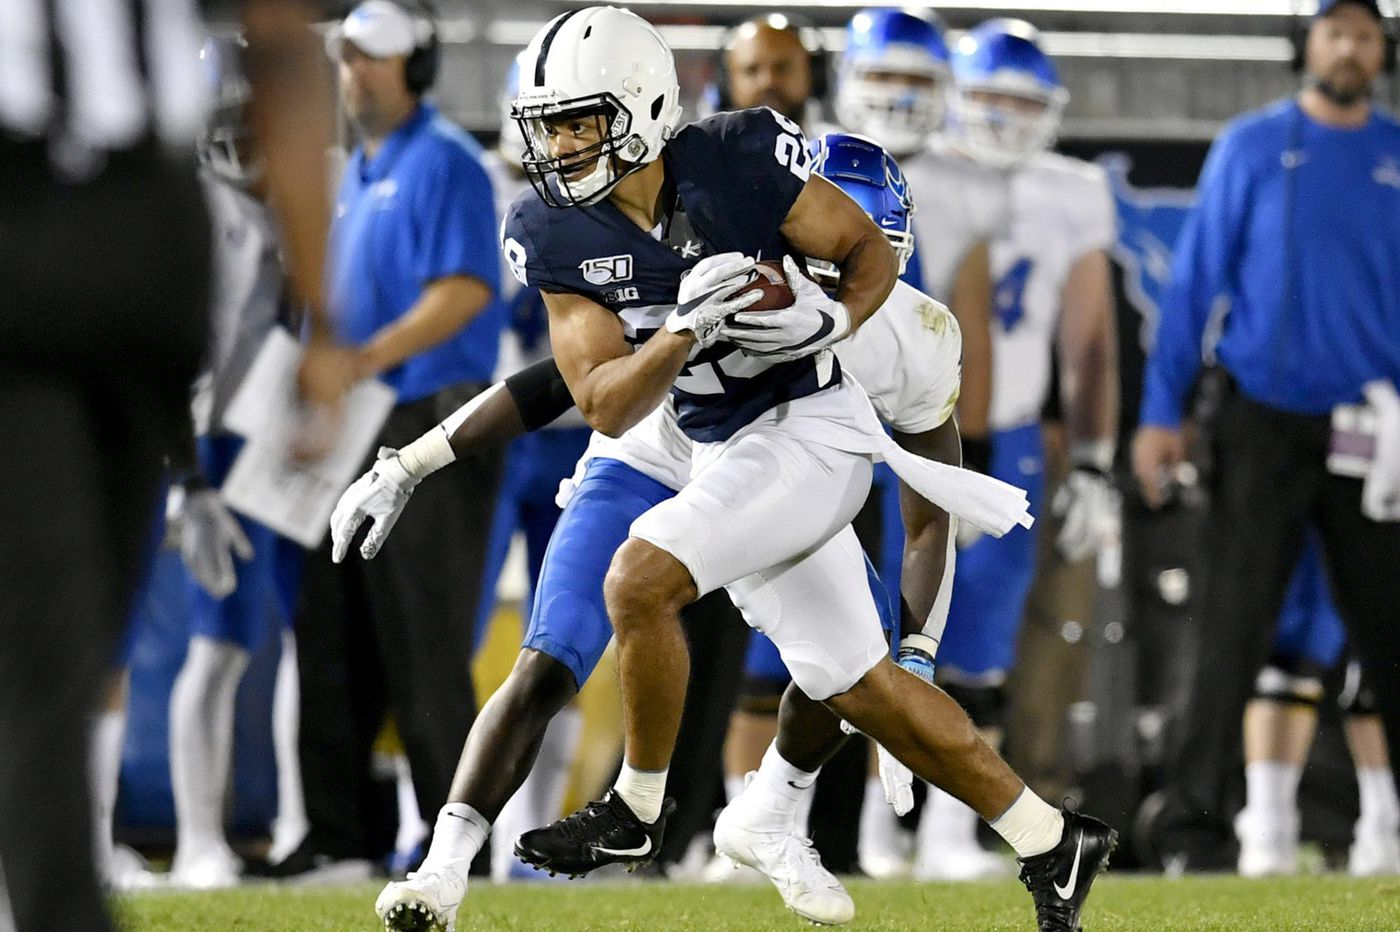 Minnesota's big wide receivers to provide a strong test for Penn State secondary